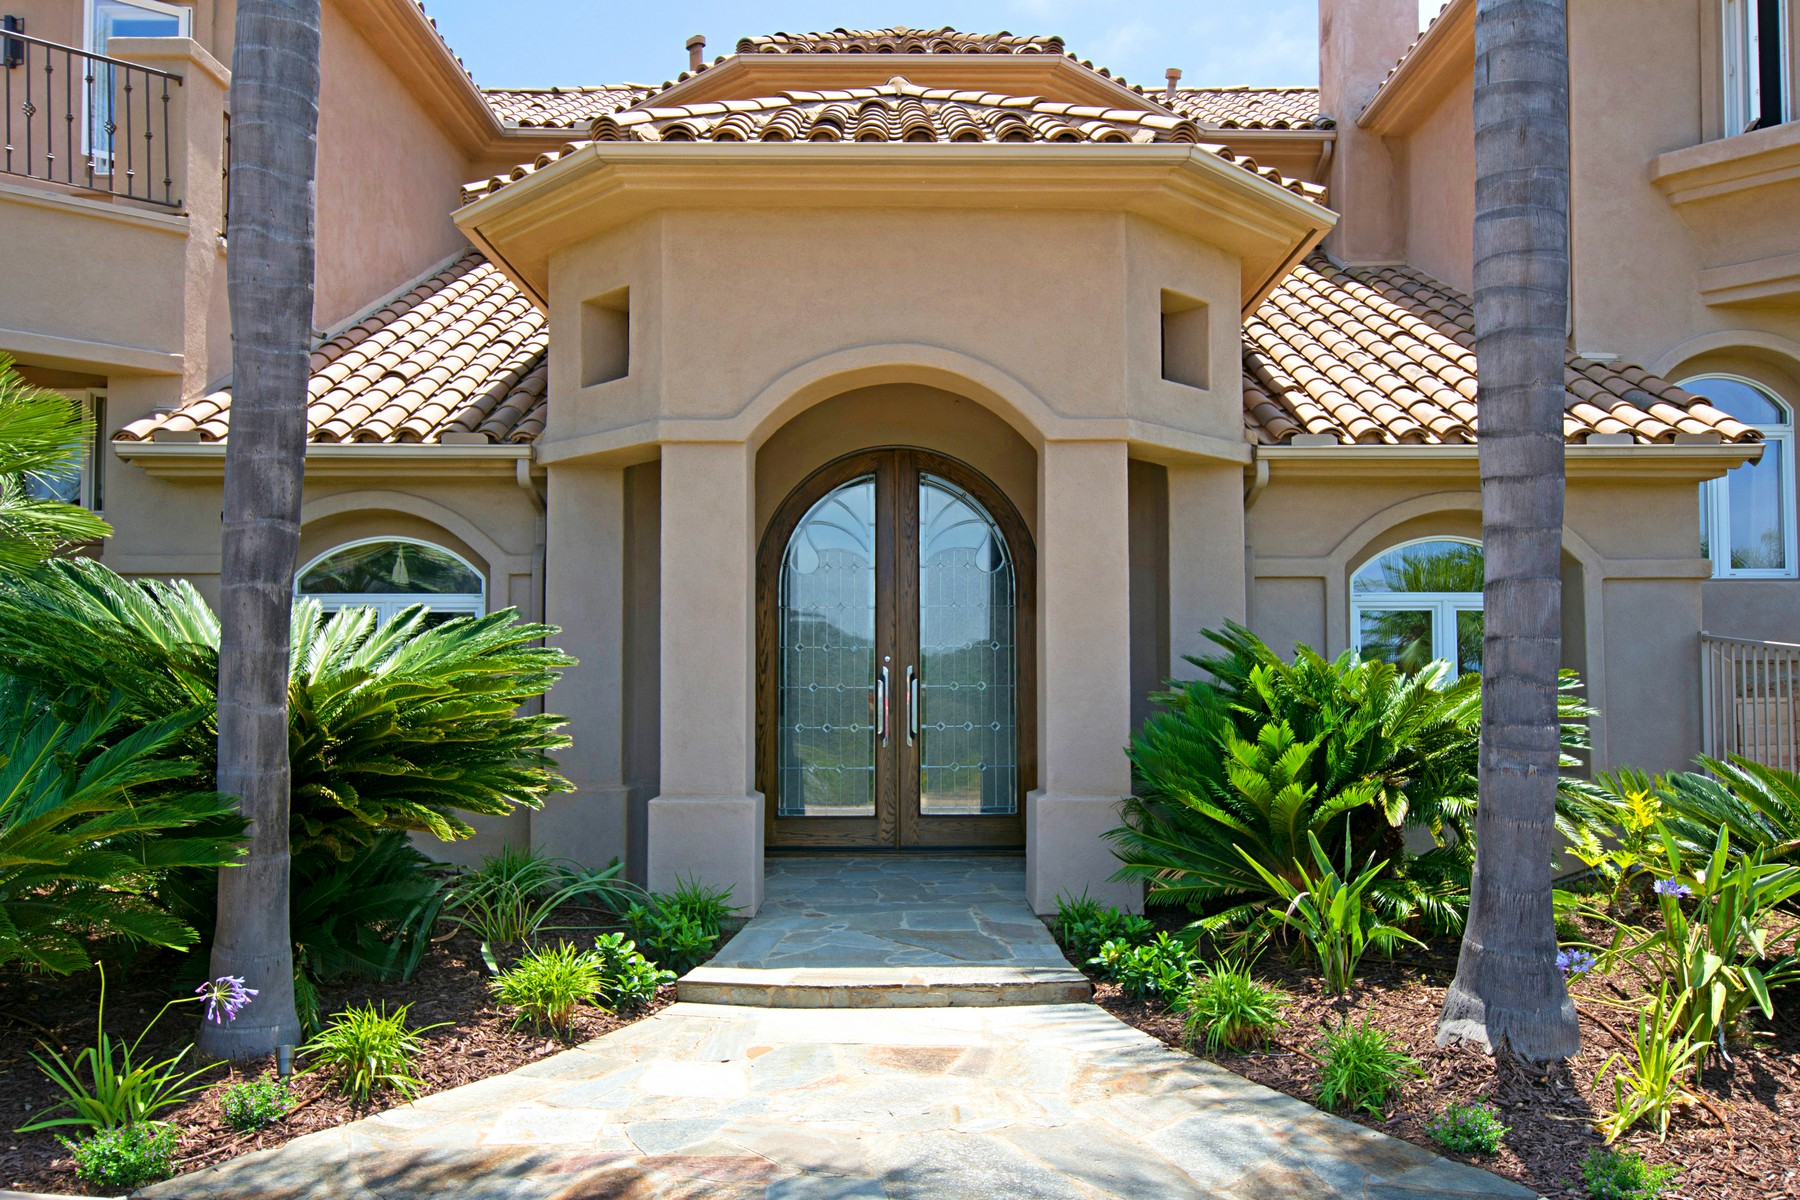 Additional photo for property listing at 6700 Via Cordoba  Rancho Santa Fe, 加利福尼亚州 92067 美国